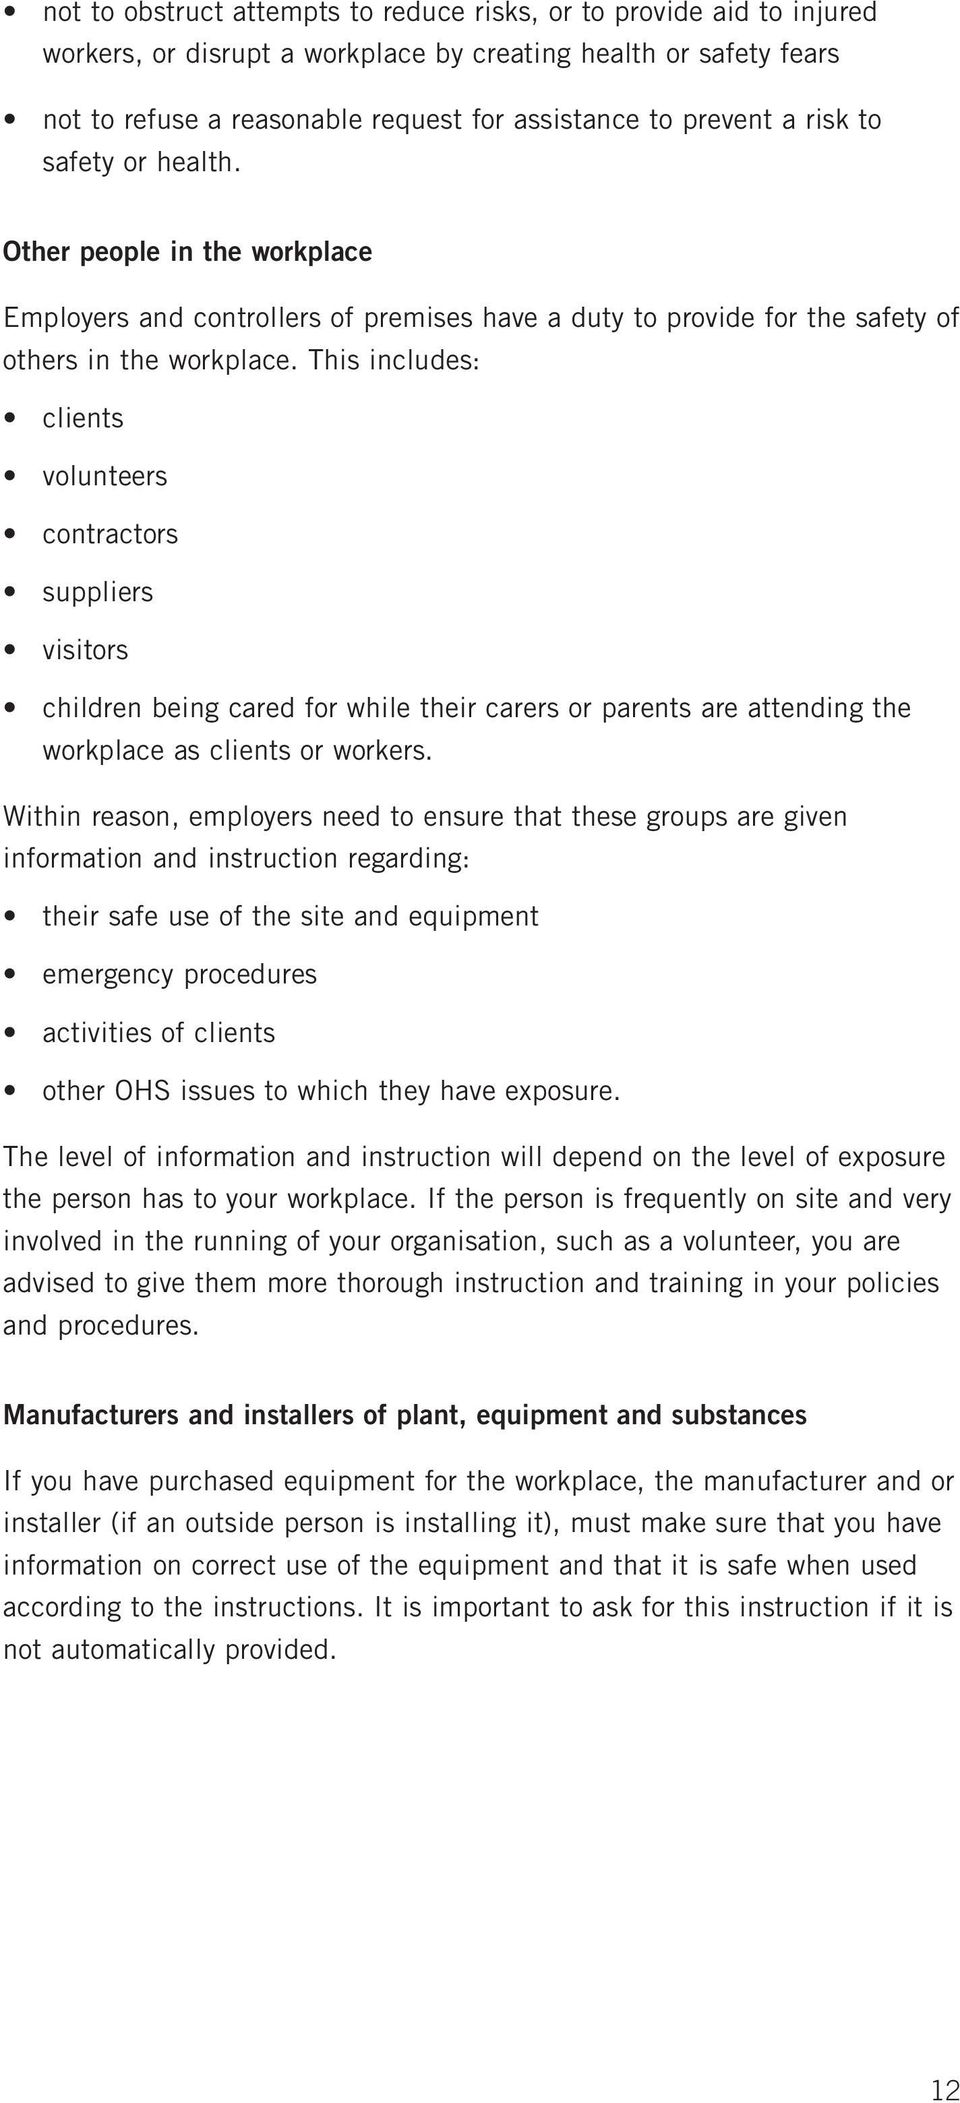 The community services safety pack a guide to occupational health this includes clients volunteers contractors suppliers visitors children being cared for while their carers or fandeluxe Choice Image